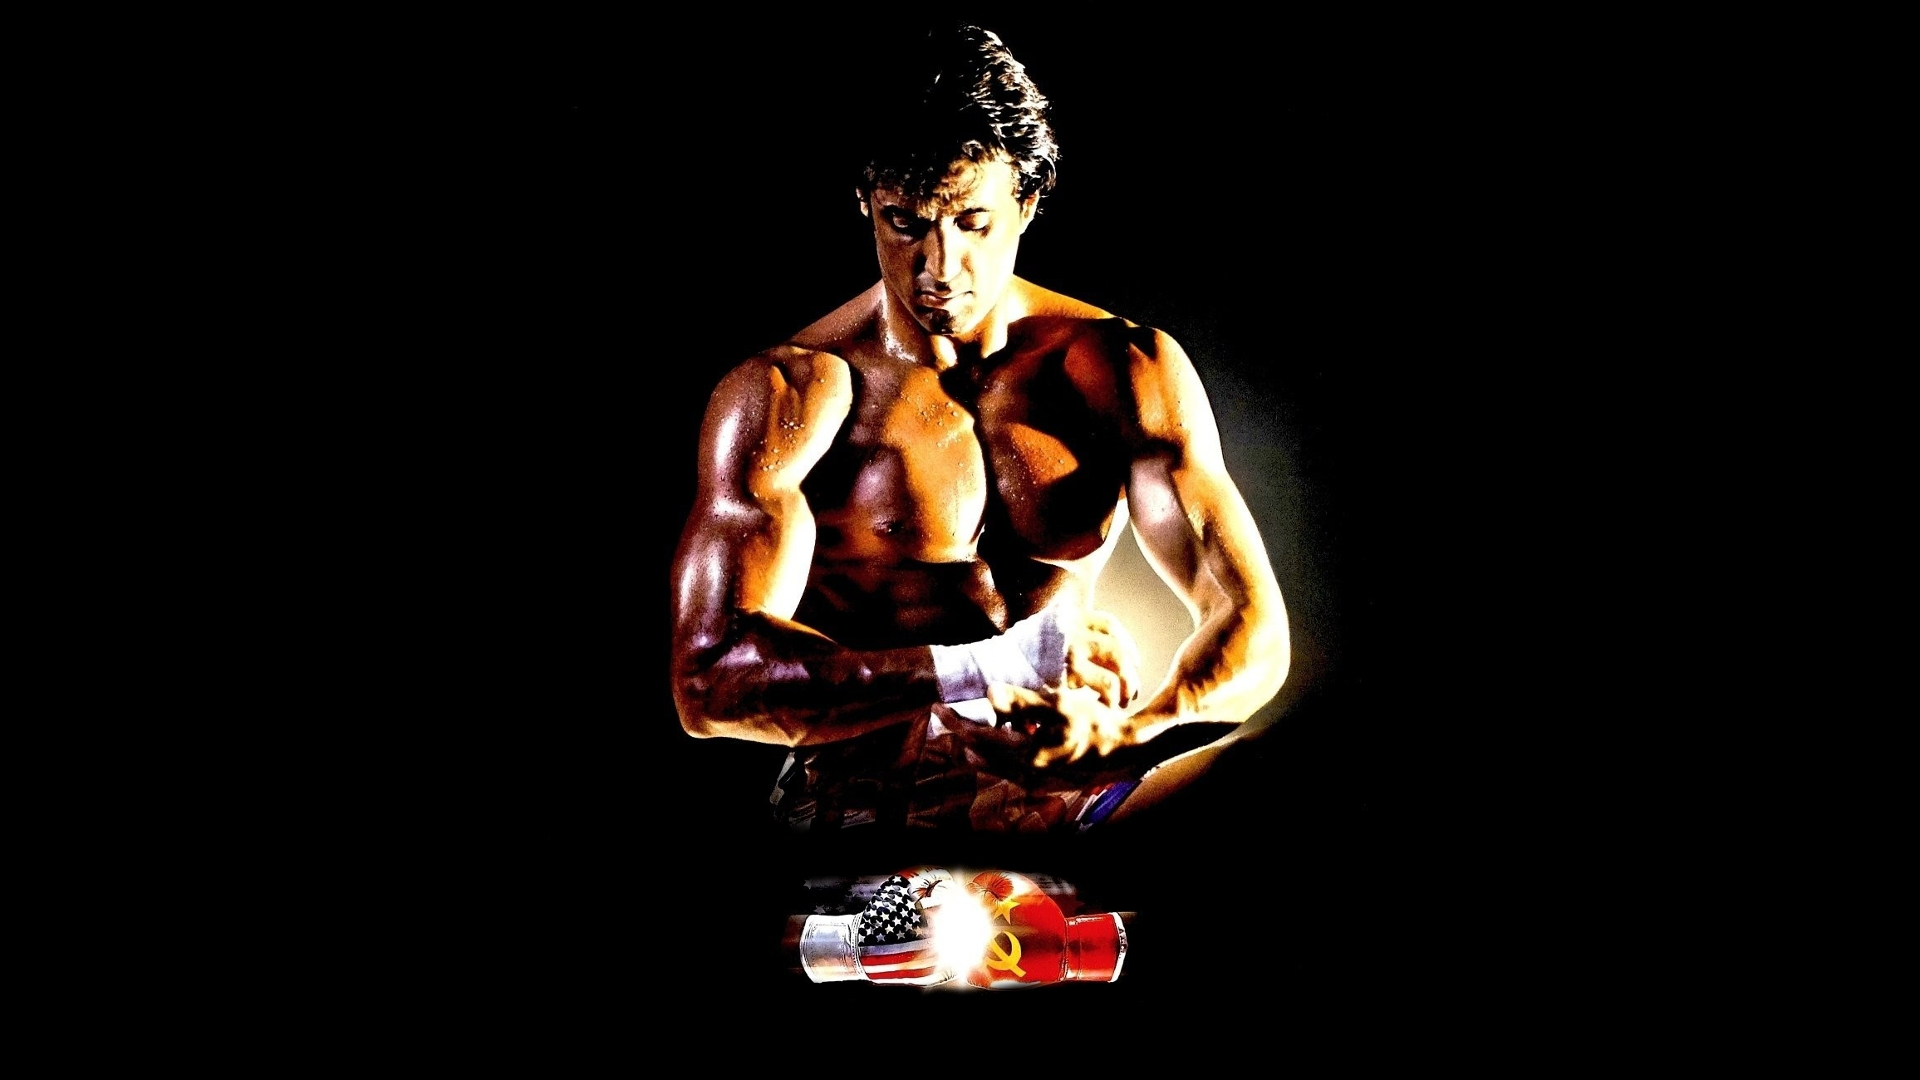 rocky iv full hd wallpaper and background image